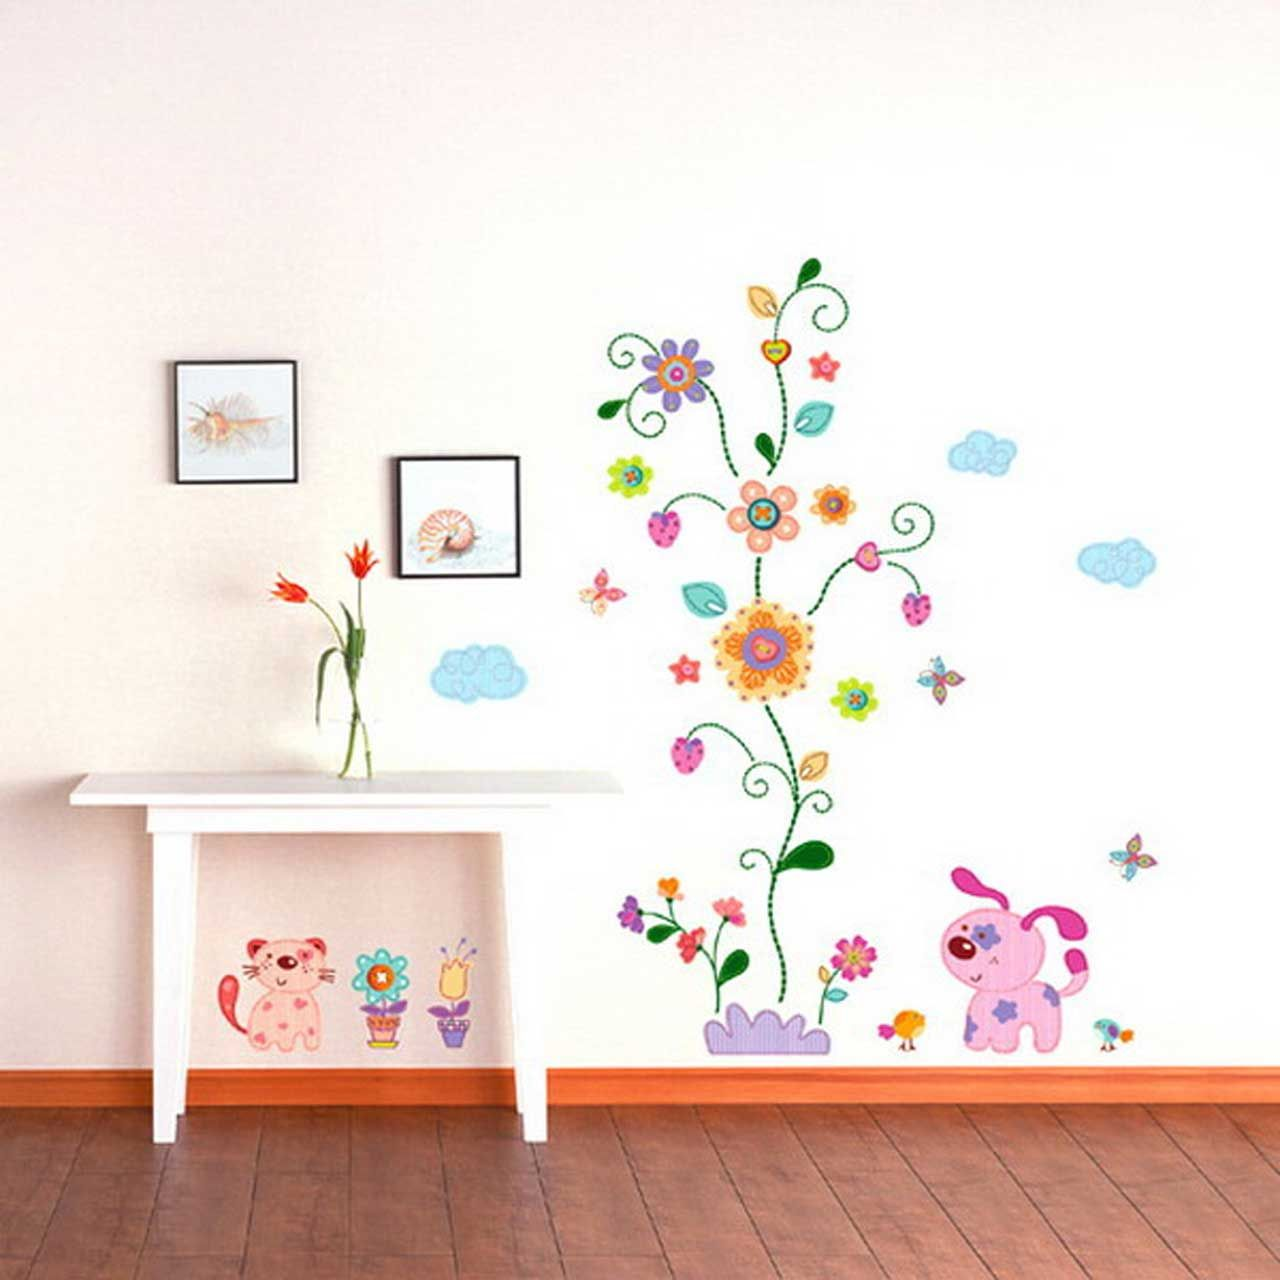 Bedroom wall decoration for kids - Beautiful Kids Room Decorating Design Ideas With Creative Removable Flower Wall Art Kids Room Design Also